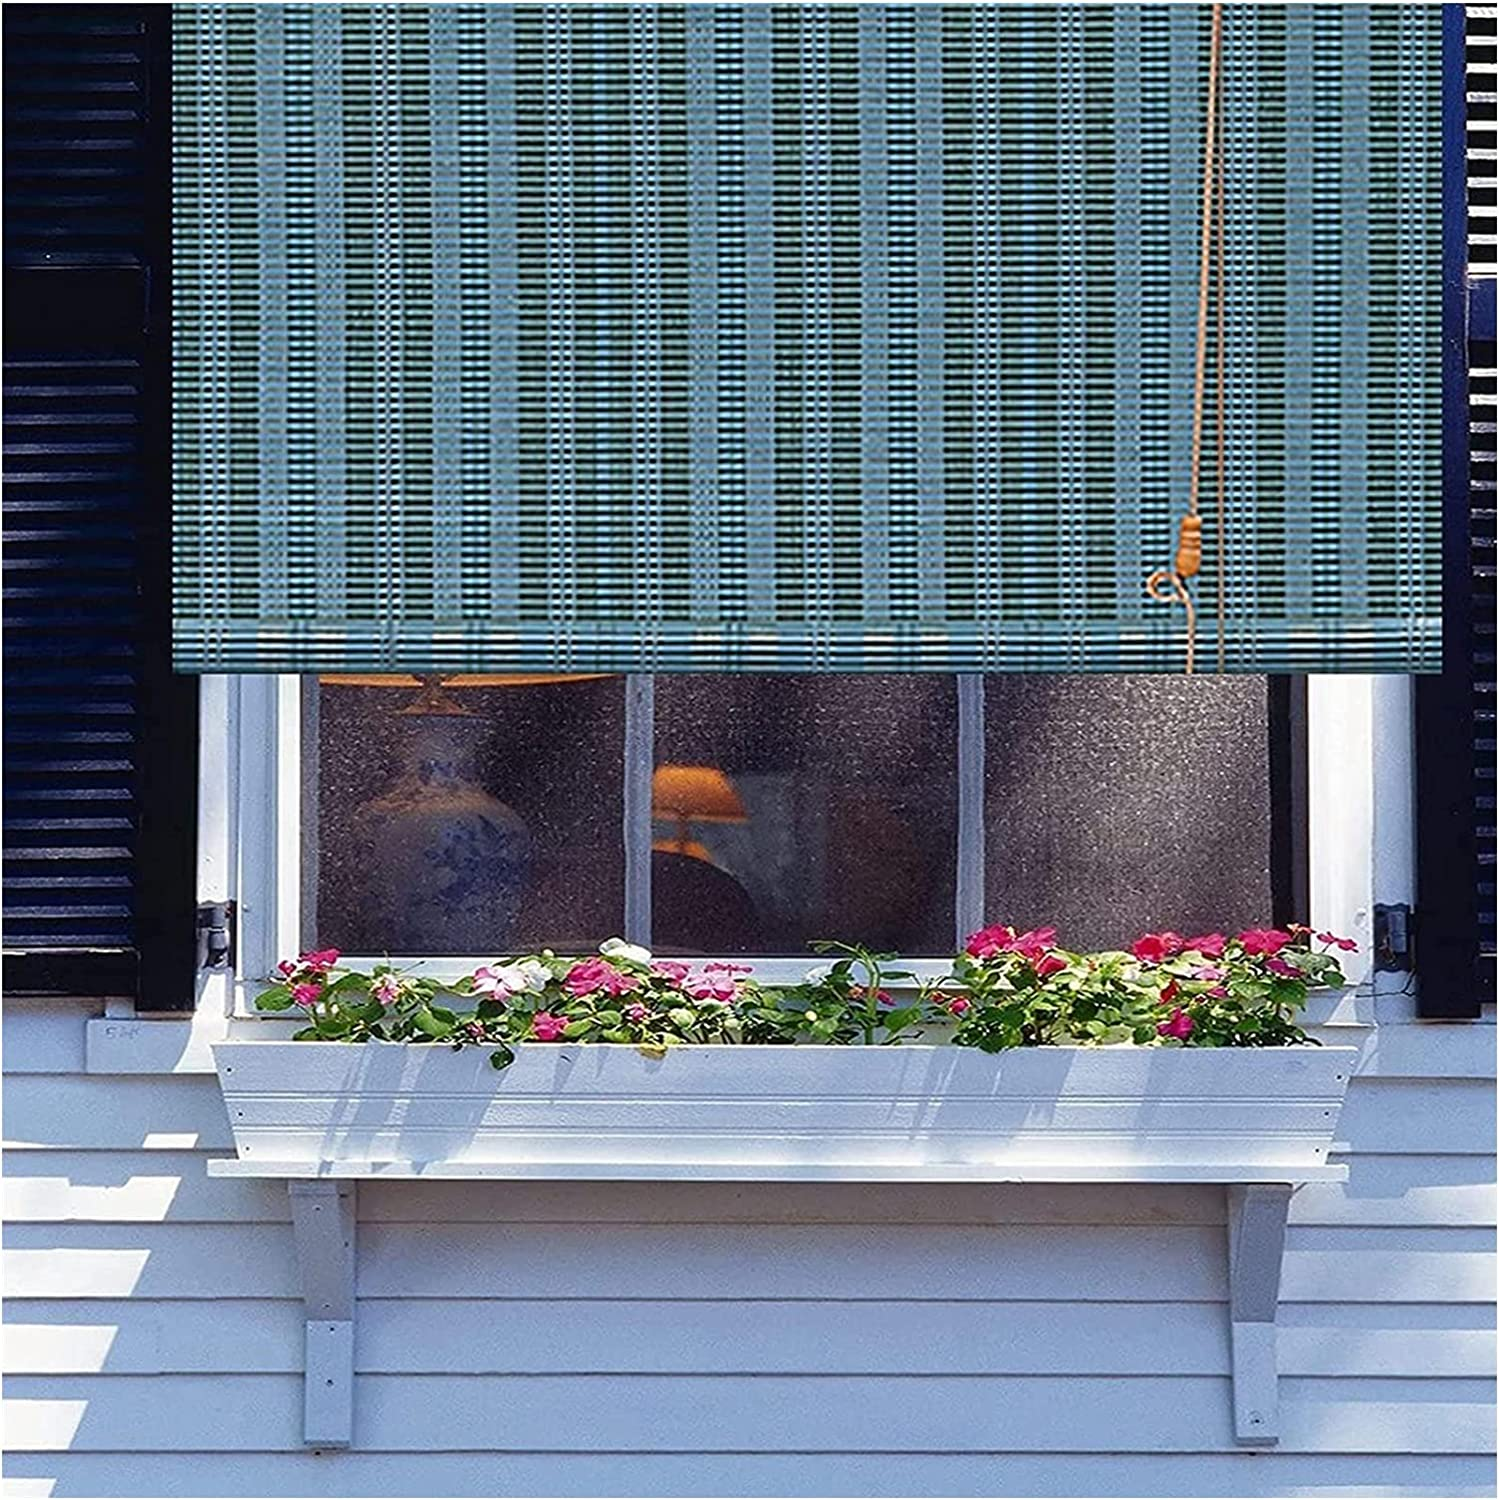 35% OFF Max 53% OFF Bamboo Blinds for Curtain Windows Roller